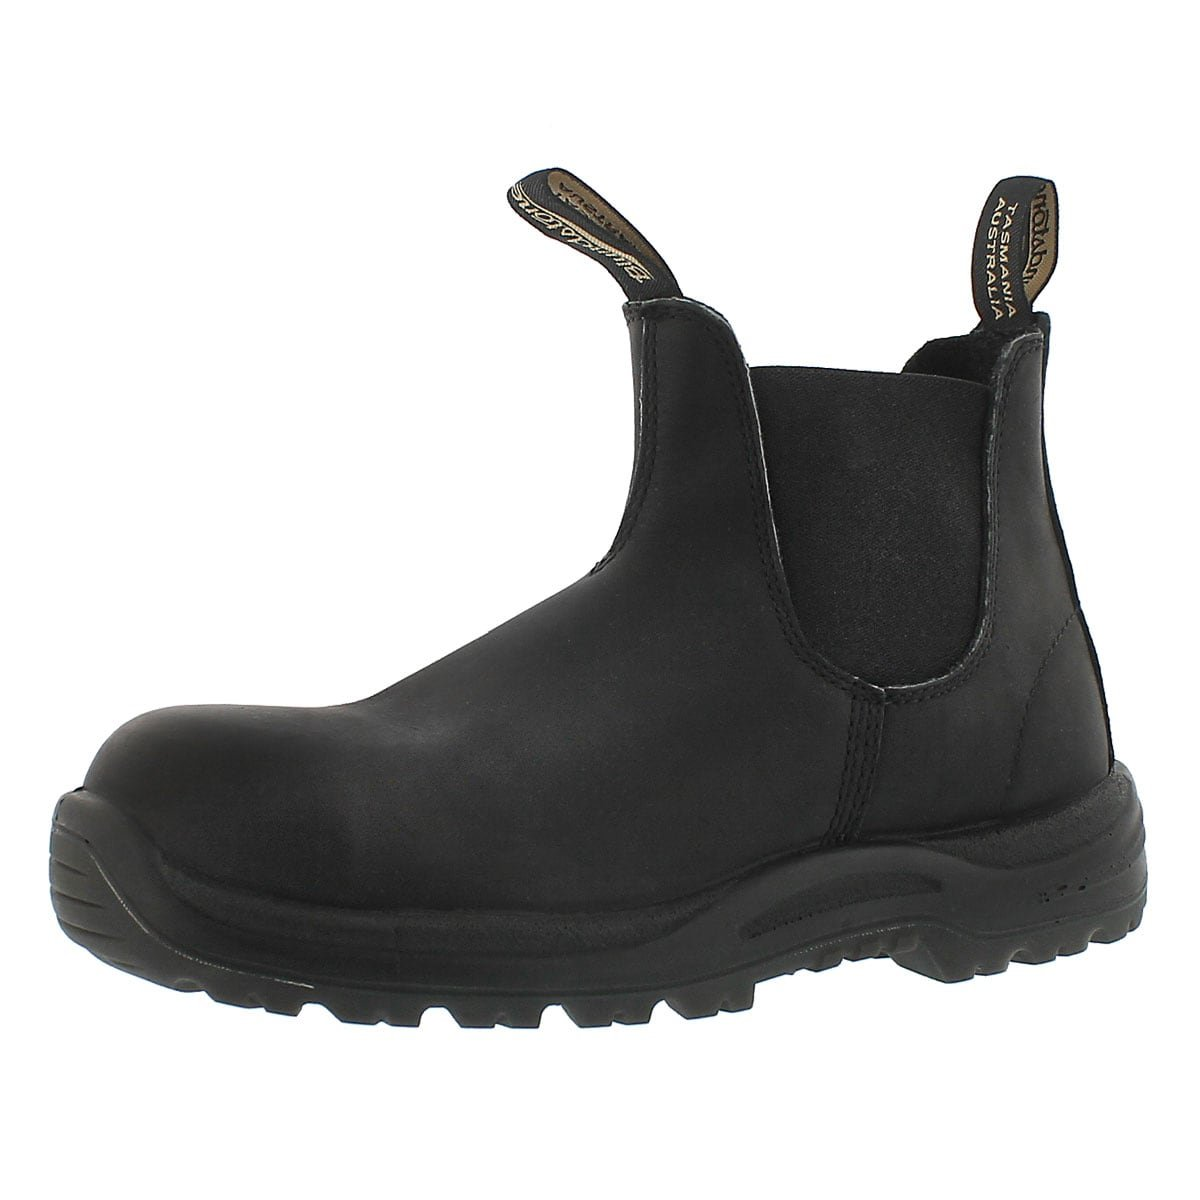 4de80431e1f Amazon.com | Blundstone Xtreme Safety Style 163 - Safety Boot (Men's ...